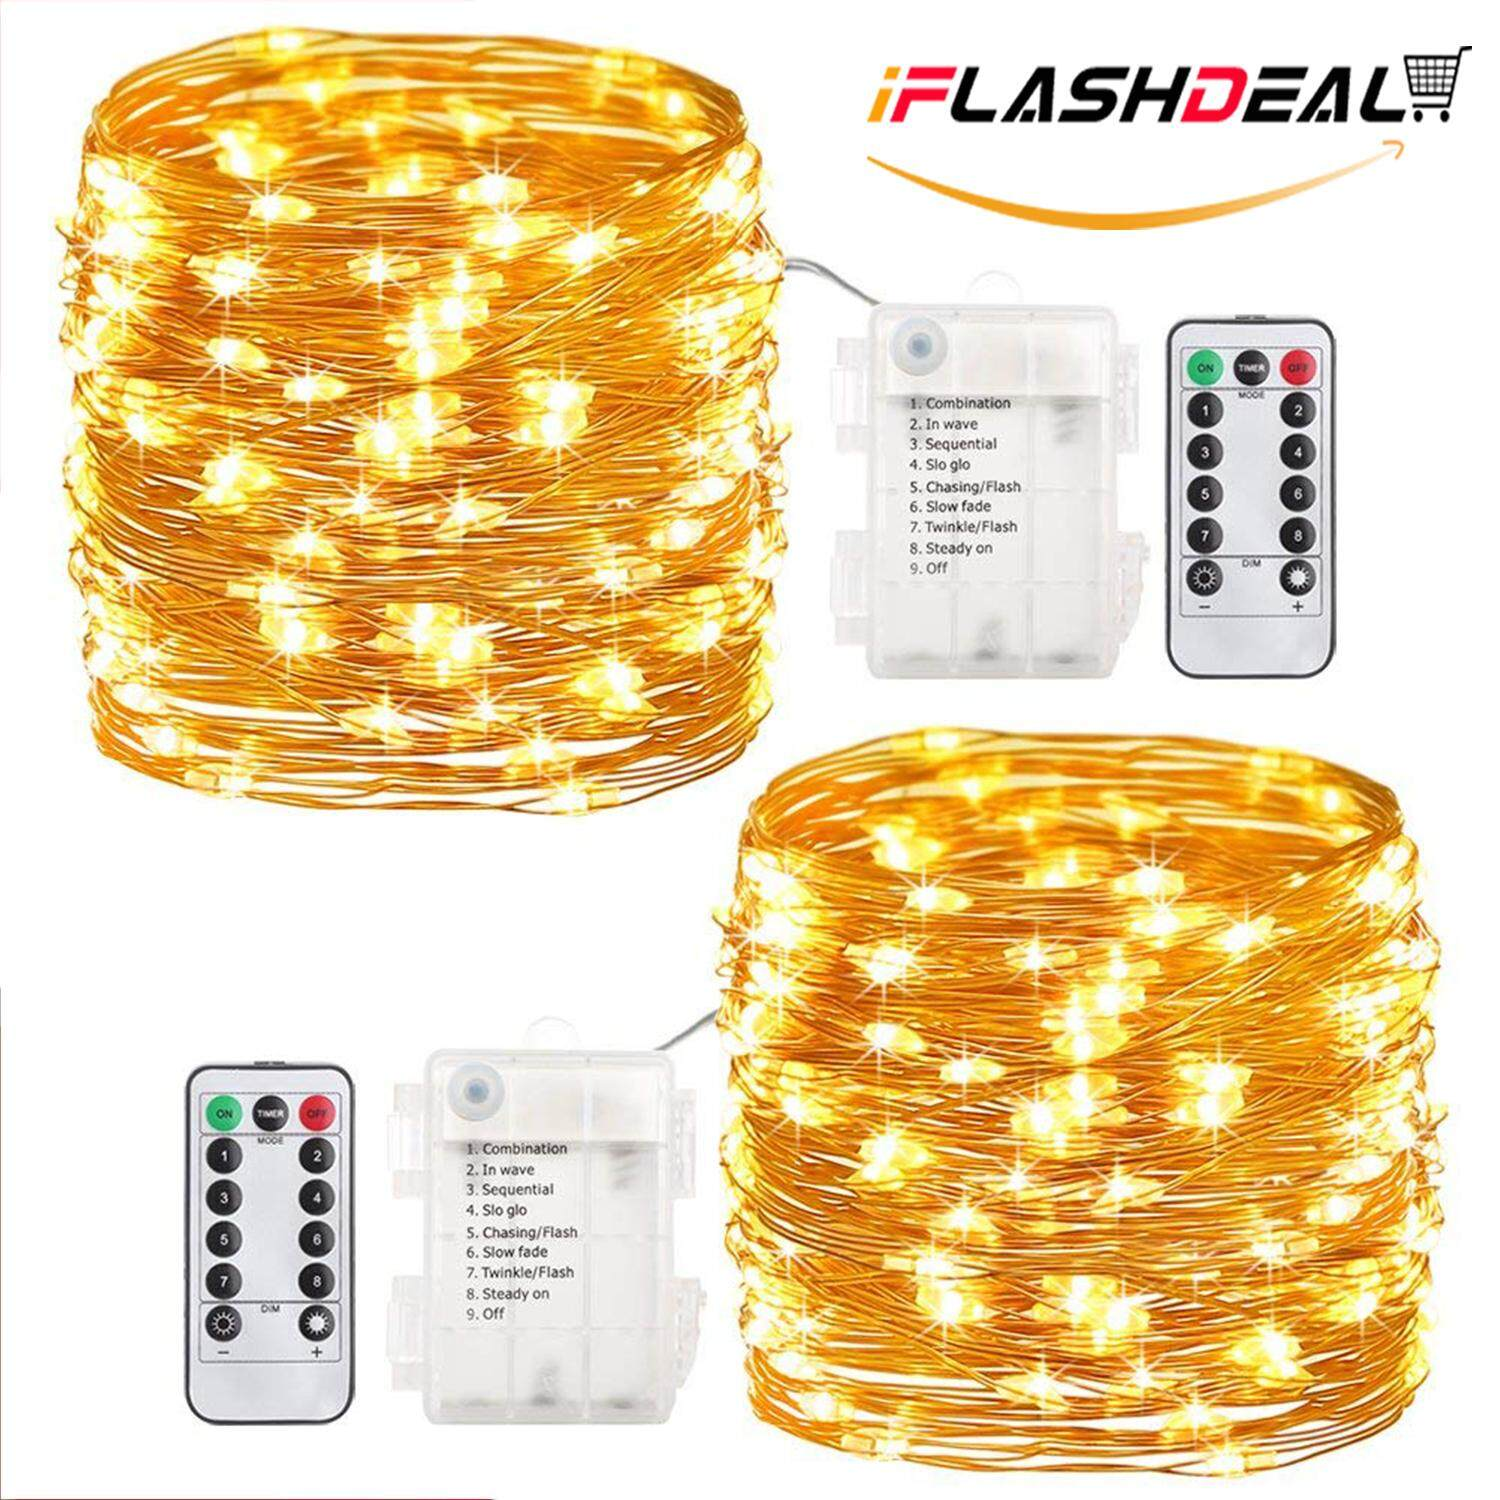 iFlashDeal 2 Pack 5M 50 LED String Lights Fairy Lighting Lamp Copper Wire Waterproof Wedding Party Home Festive Decor Indoor Outdoor Decorative